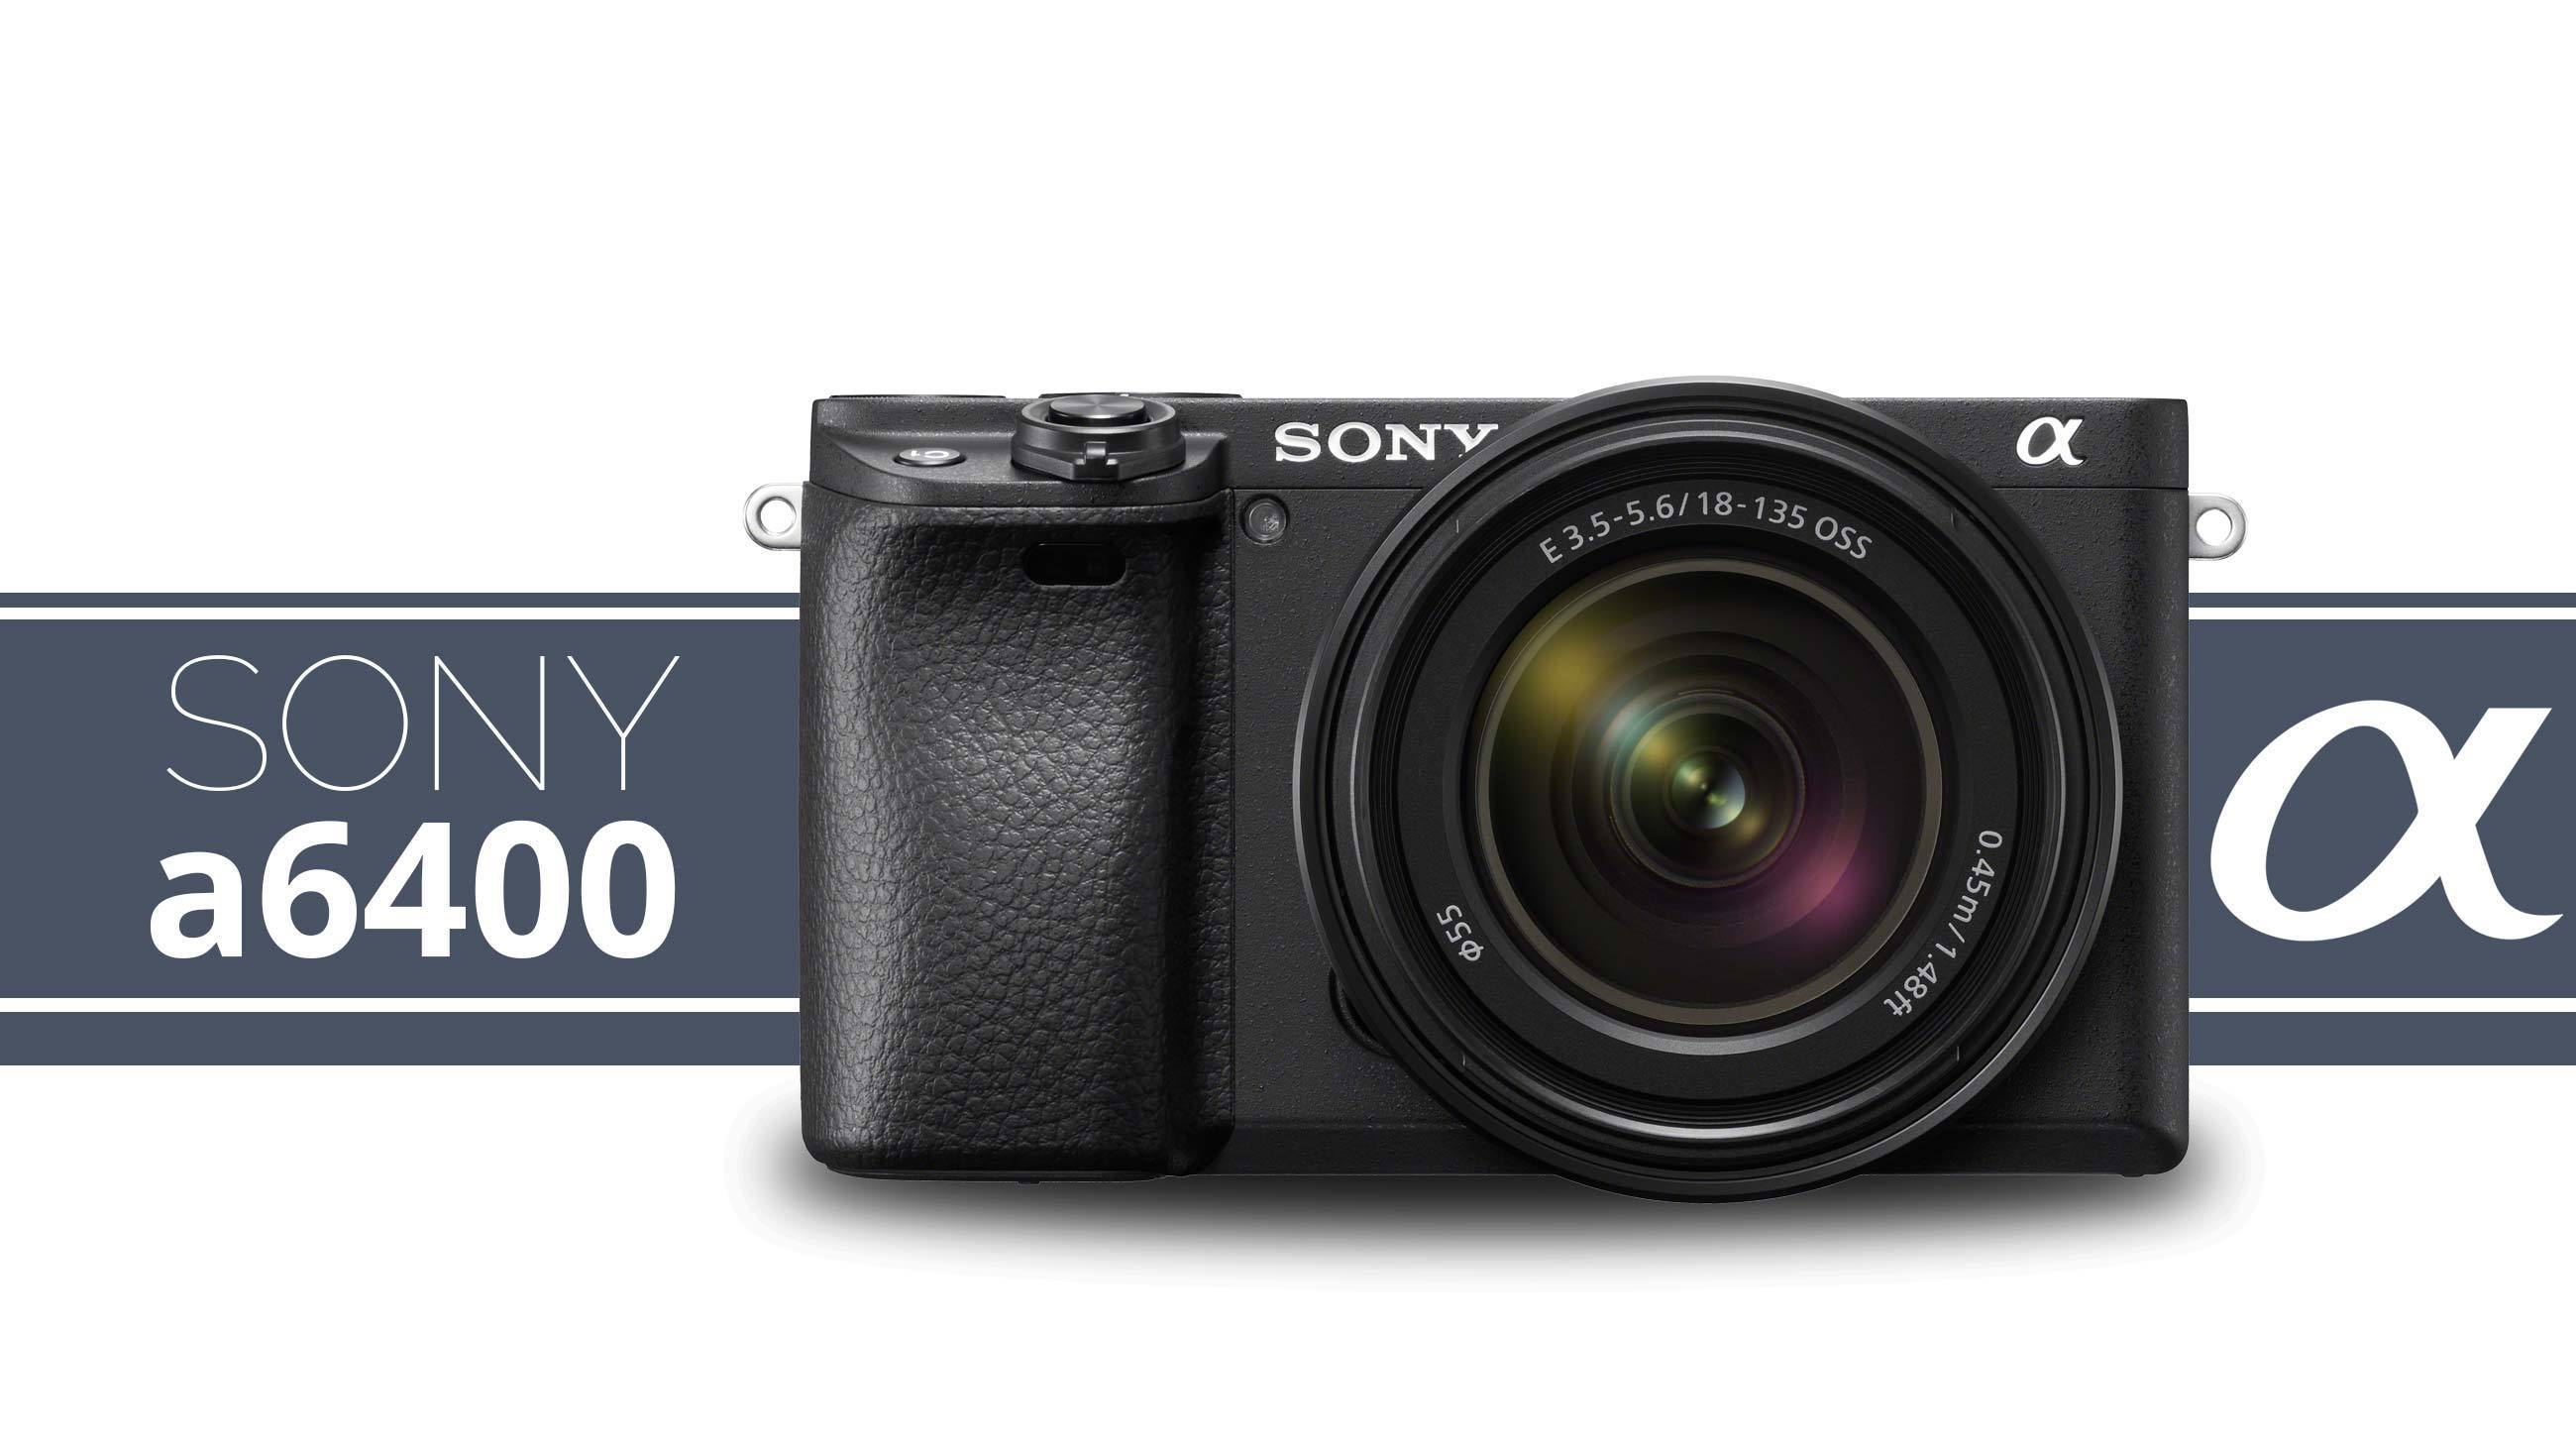 SONY Announces a6400, Firmware Updates, New Software – Light